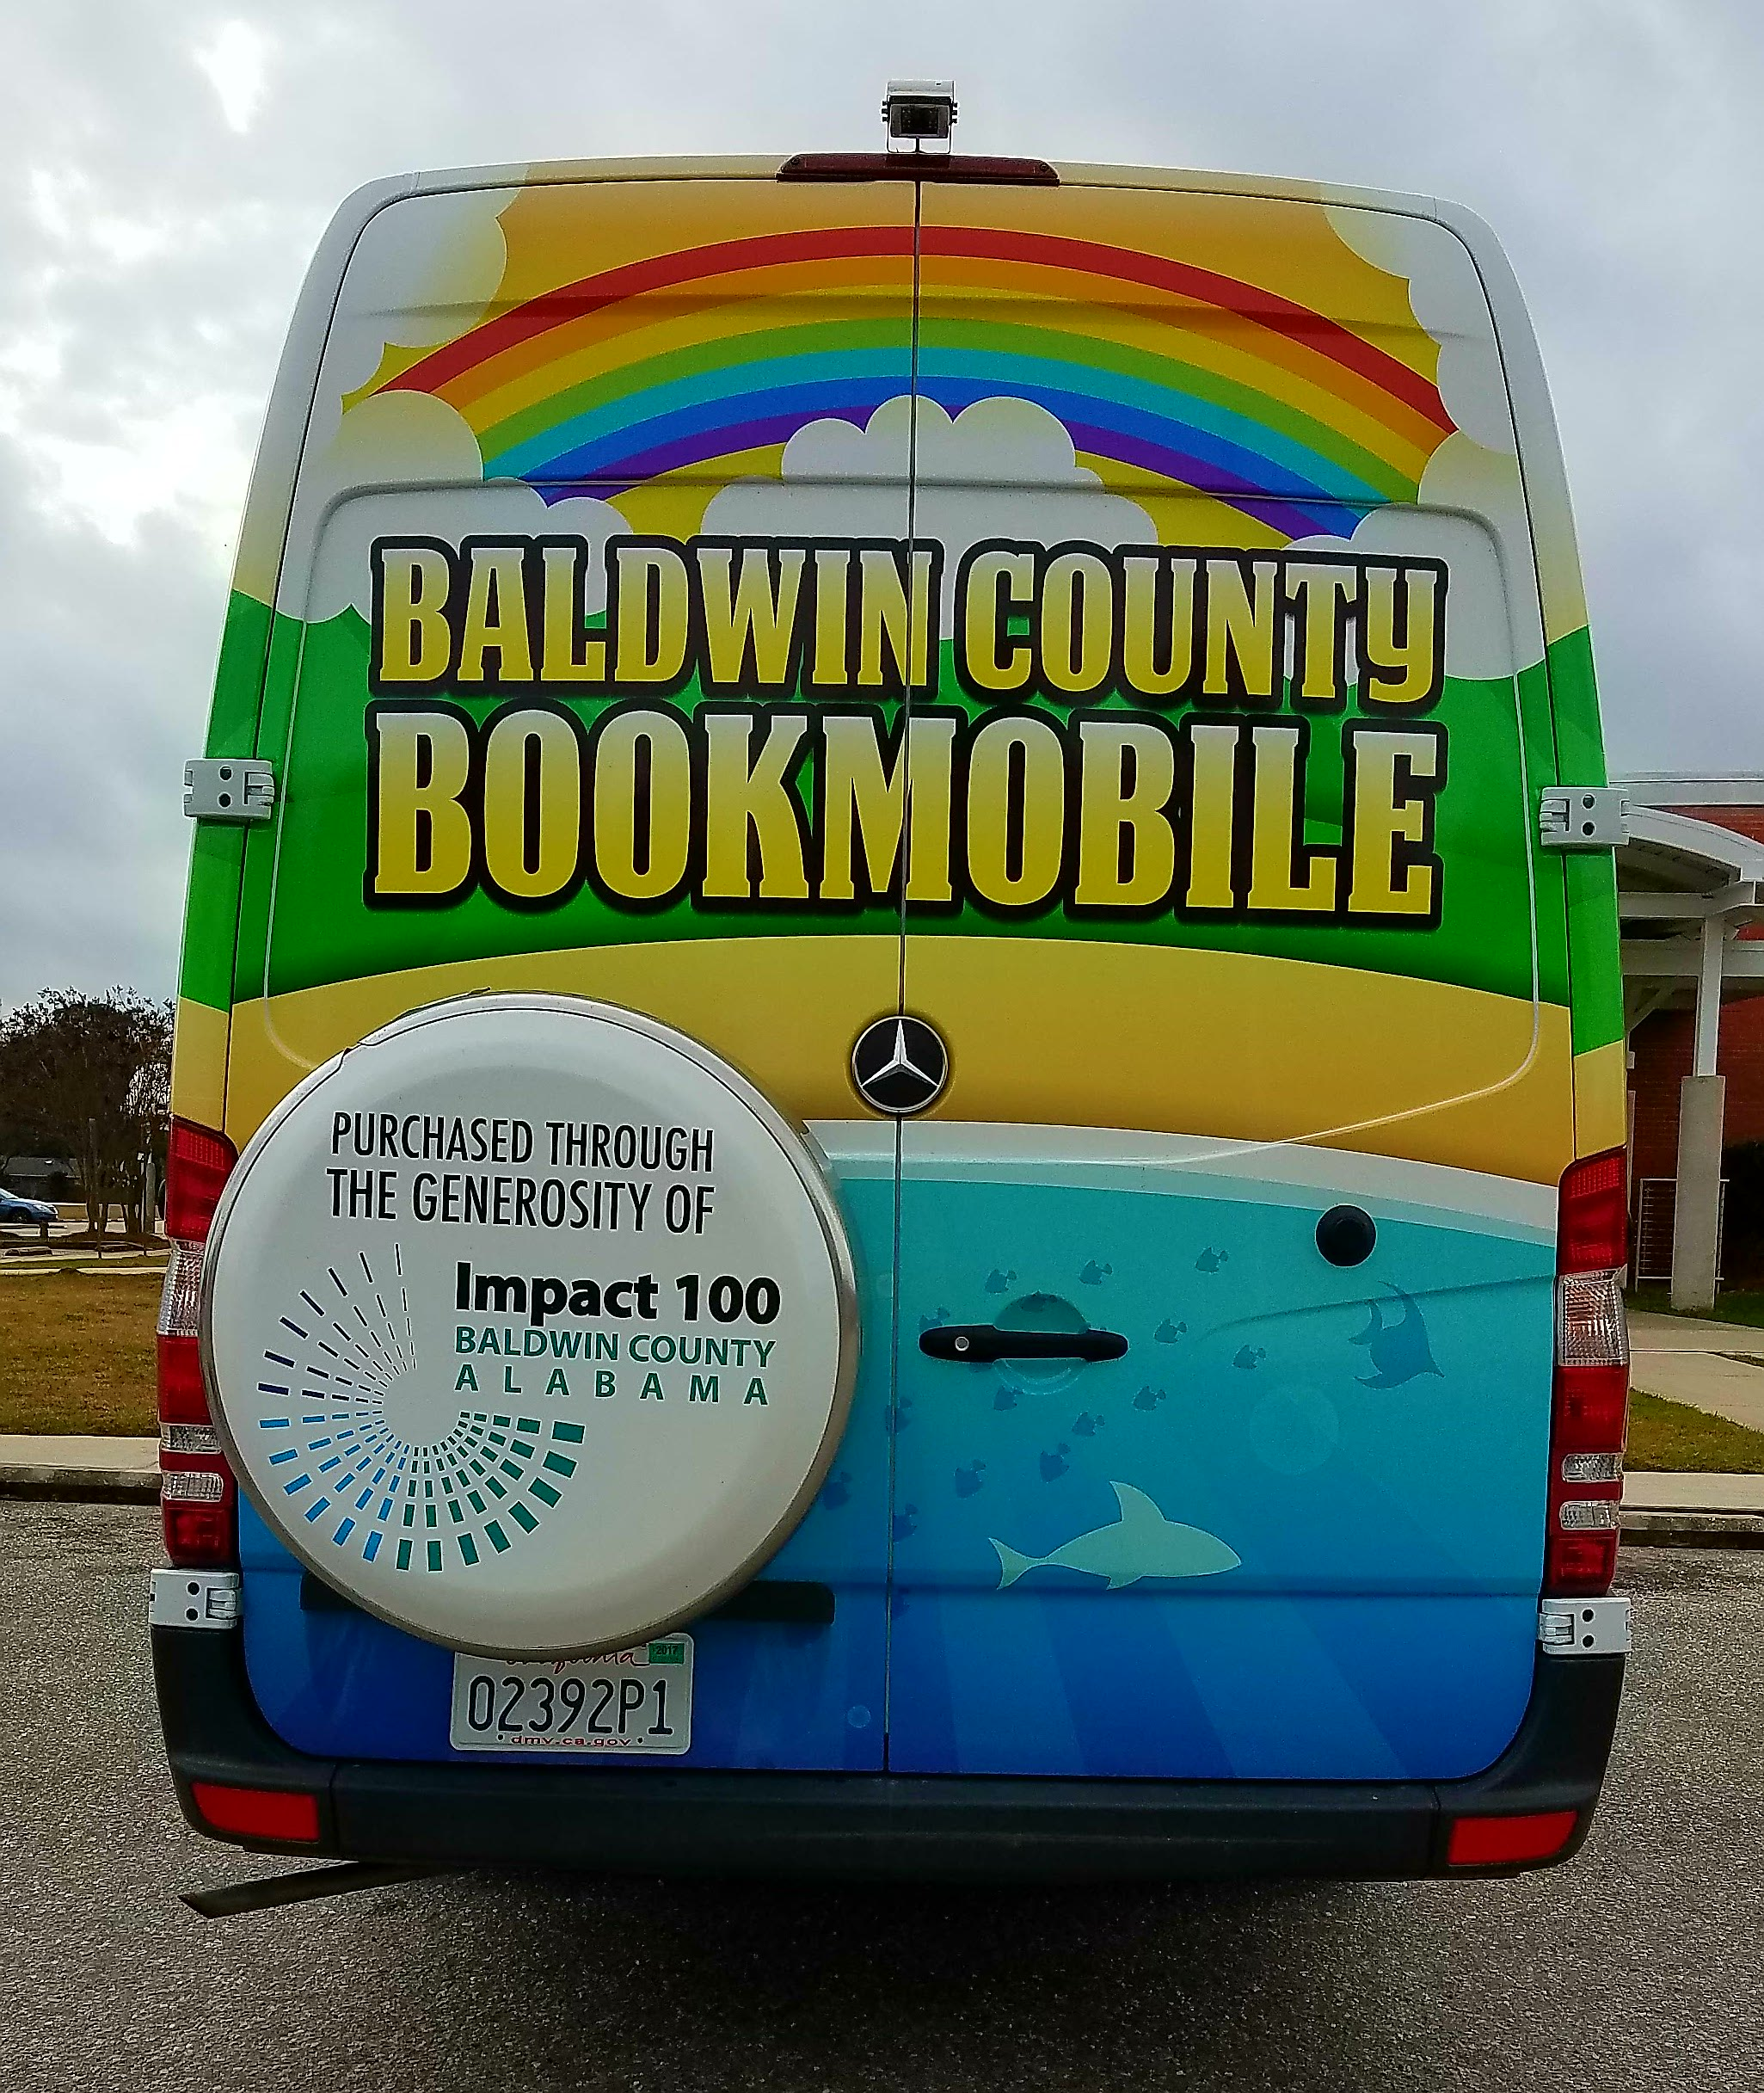 rear of bookmobile